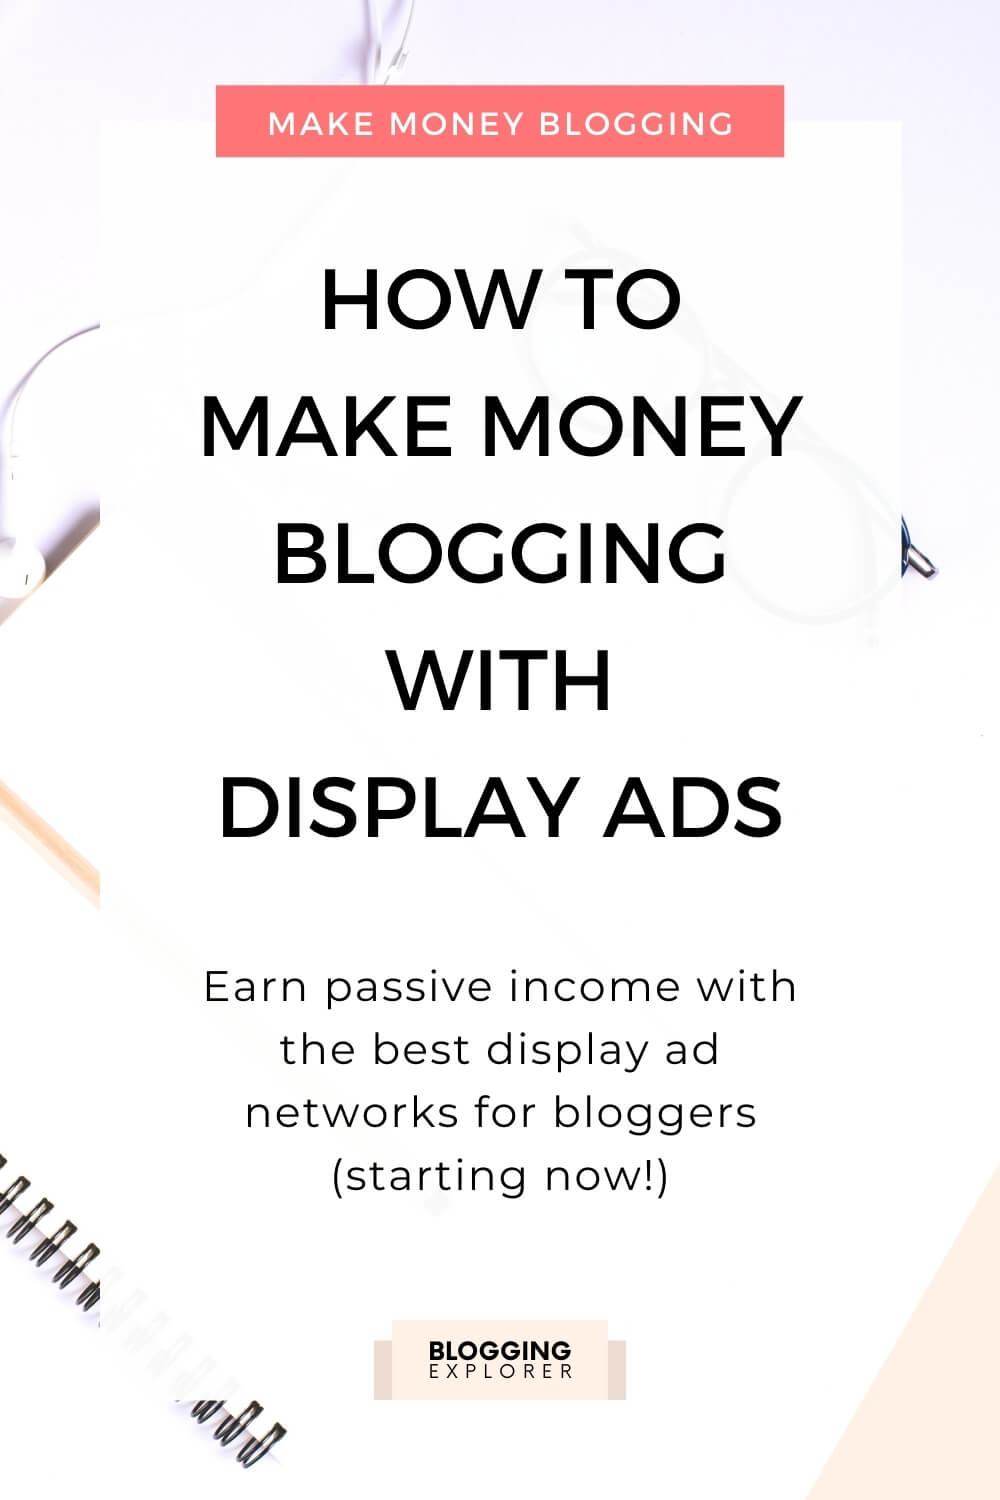 How to make money with display ad networks for bloggers - Blogging Explorer